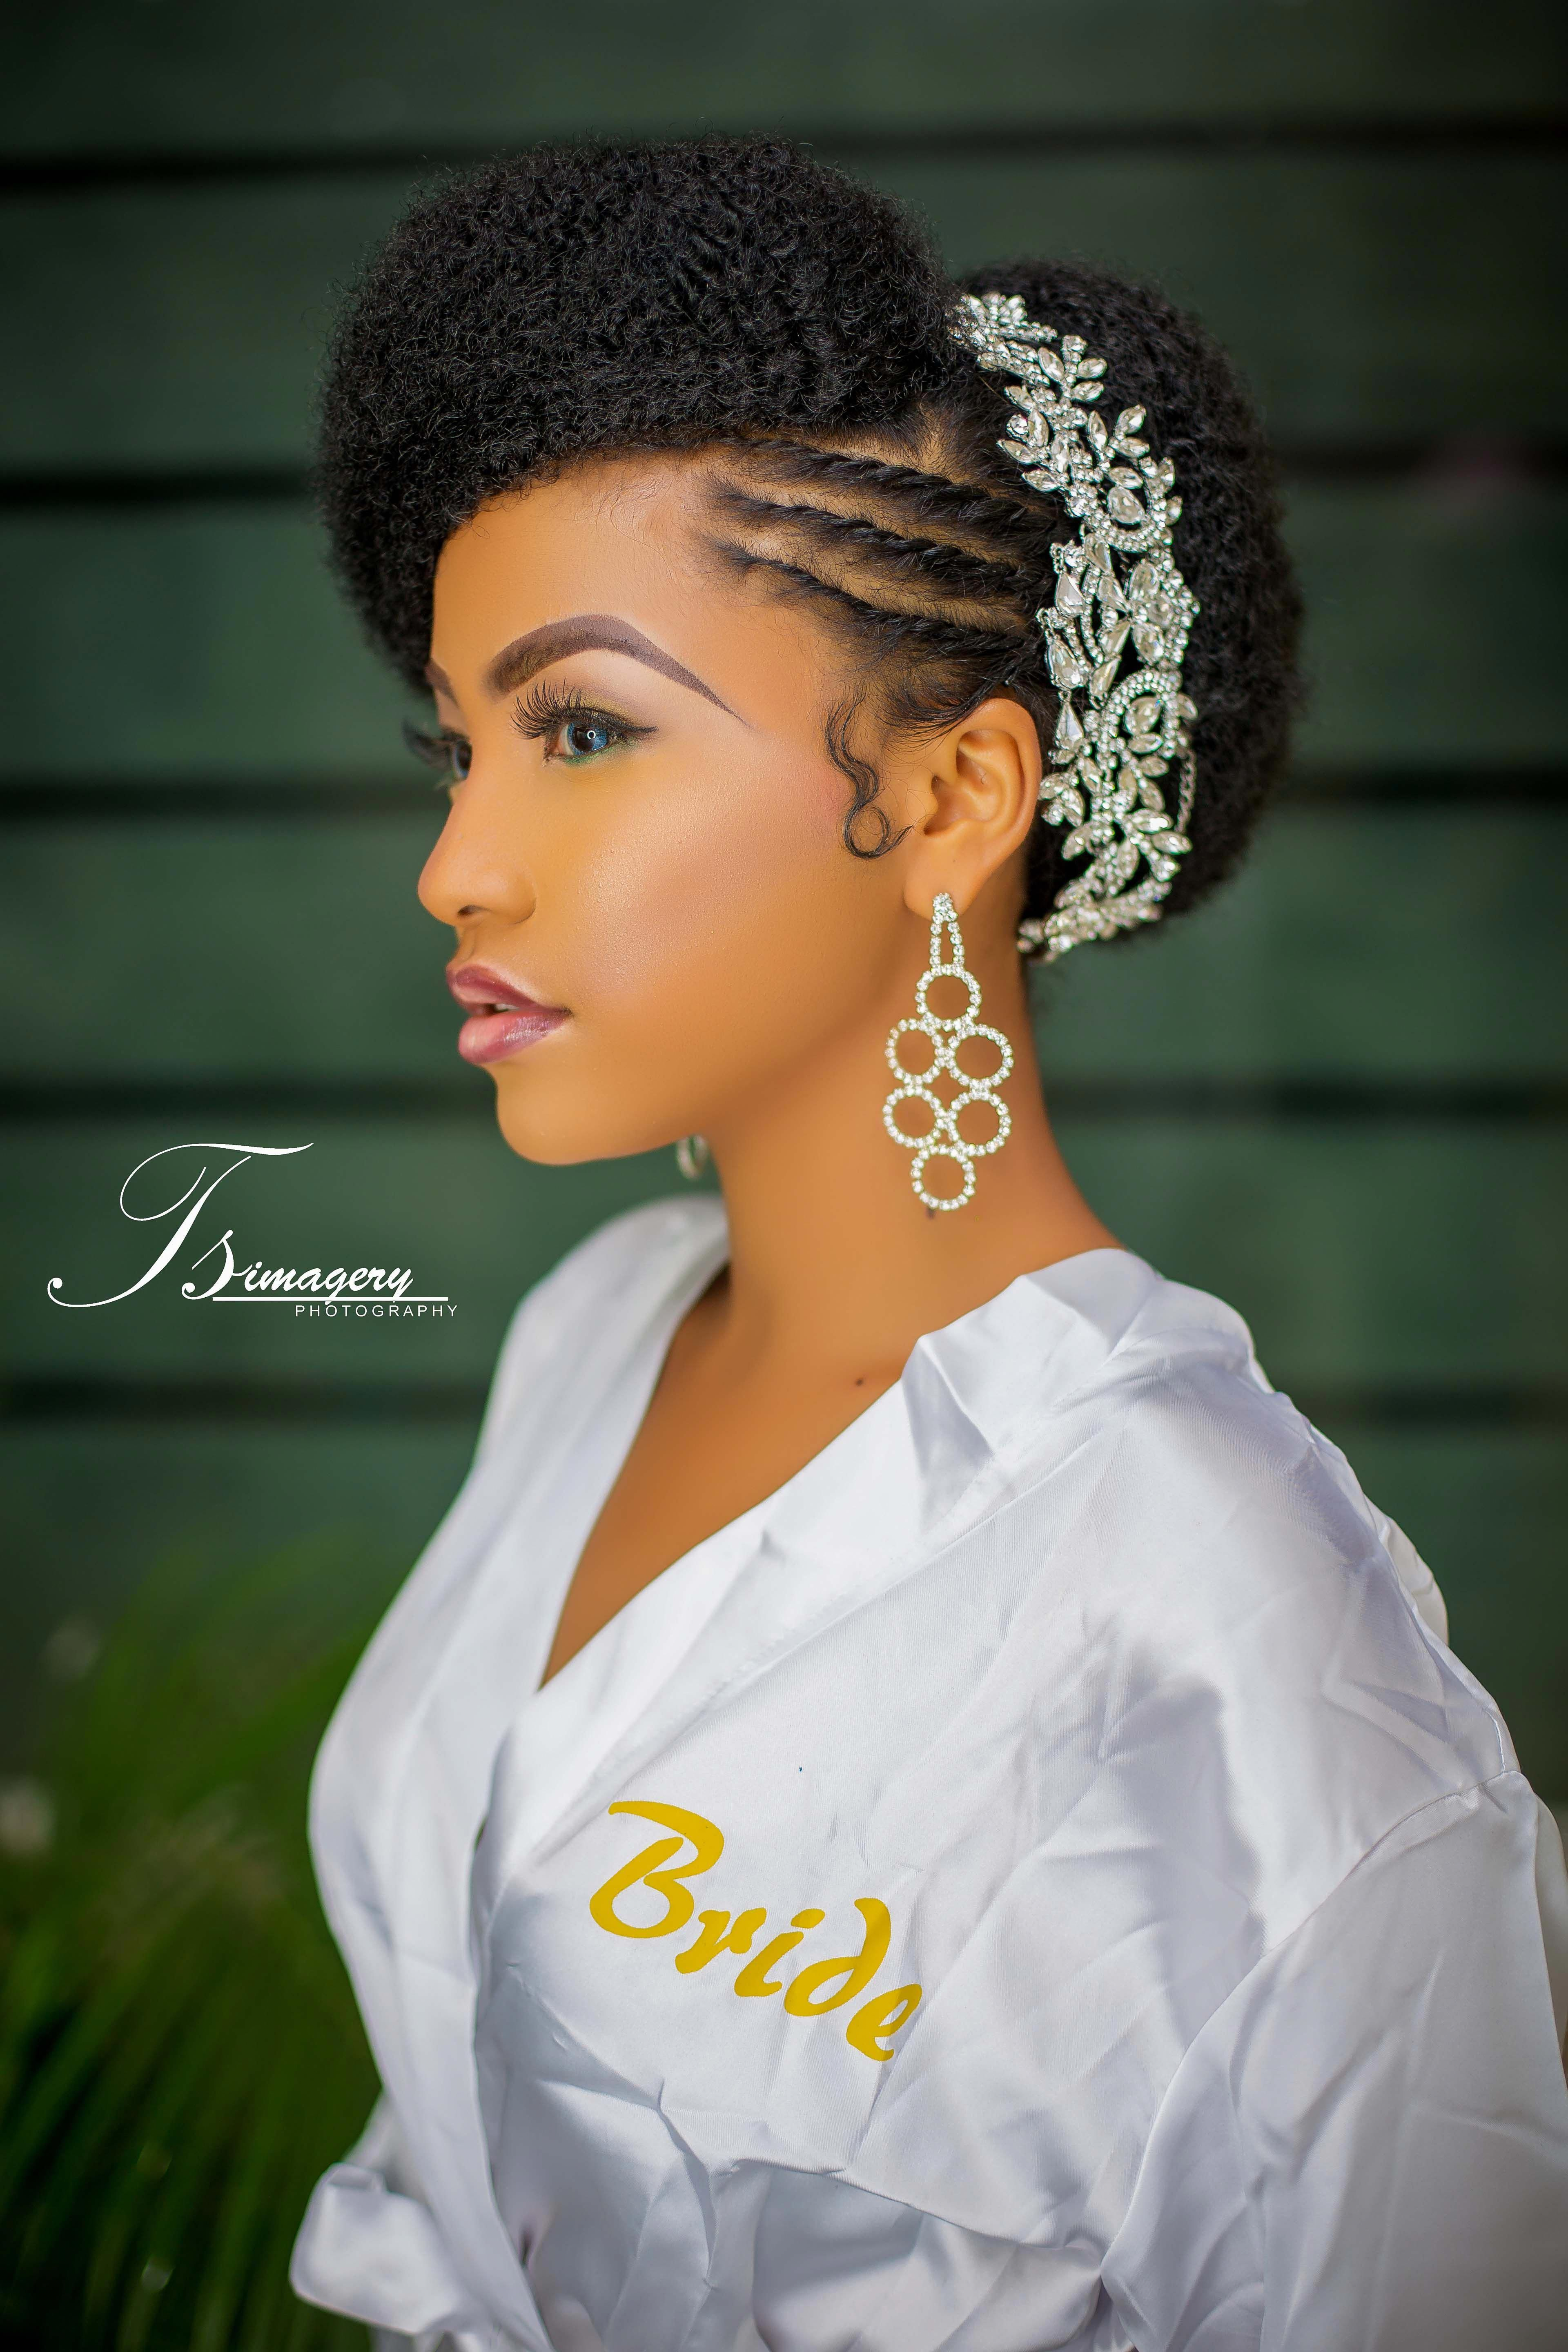 Natural Hair Bridal Shoot From Tsimagery Naturalhairstyles